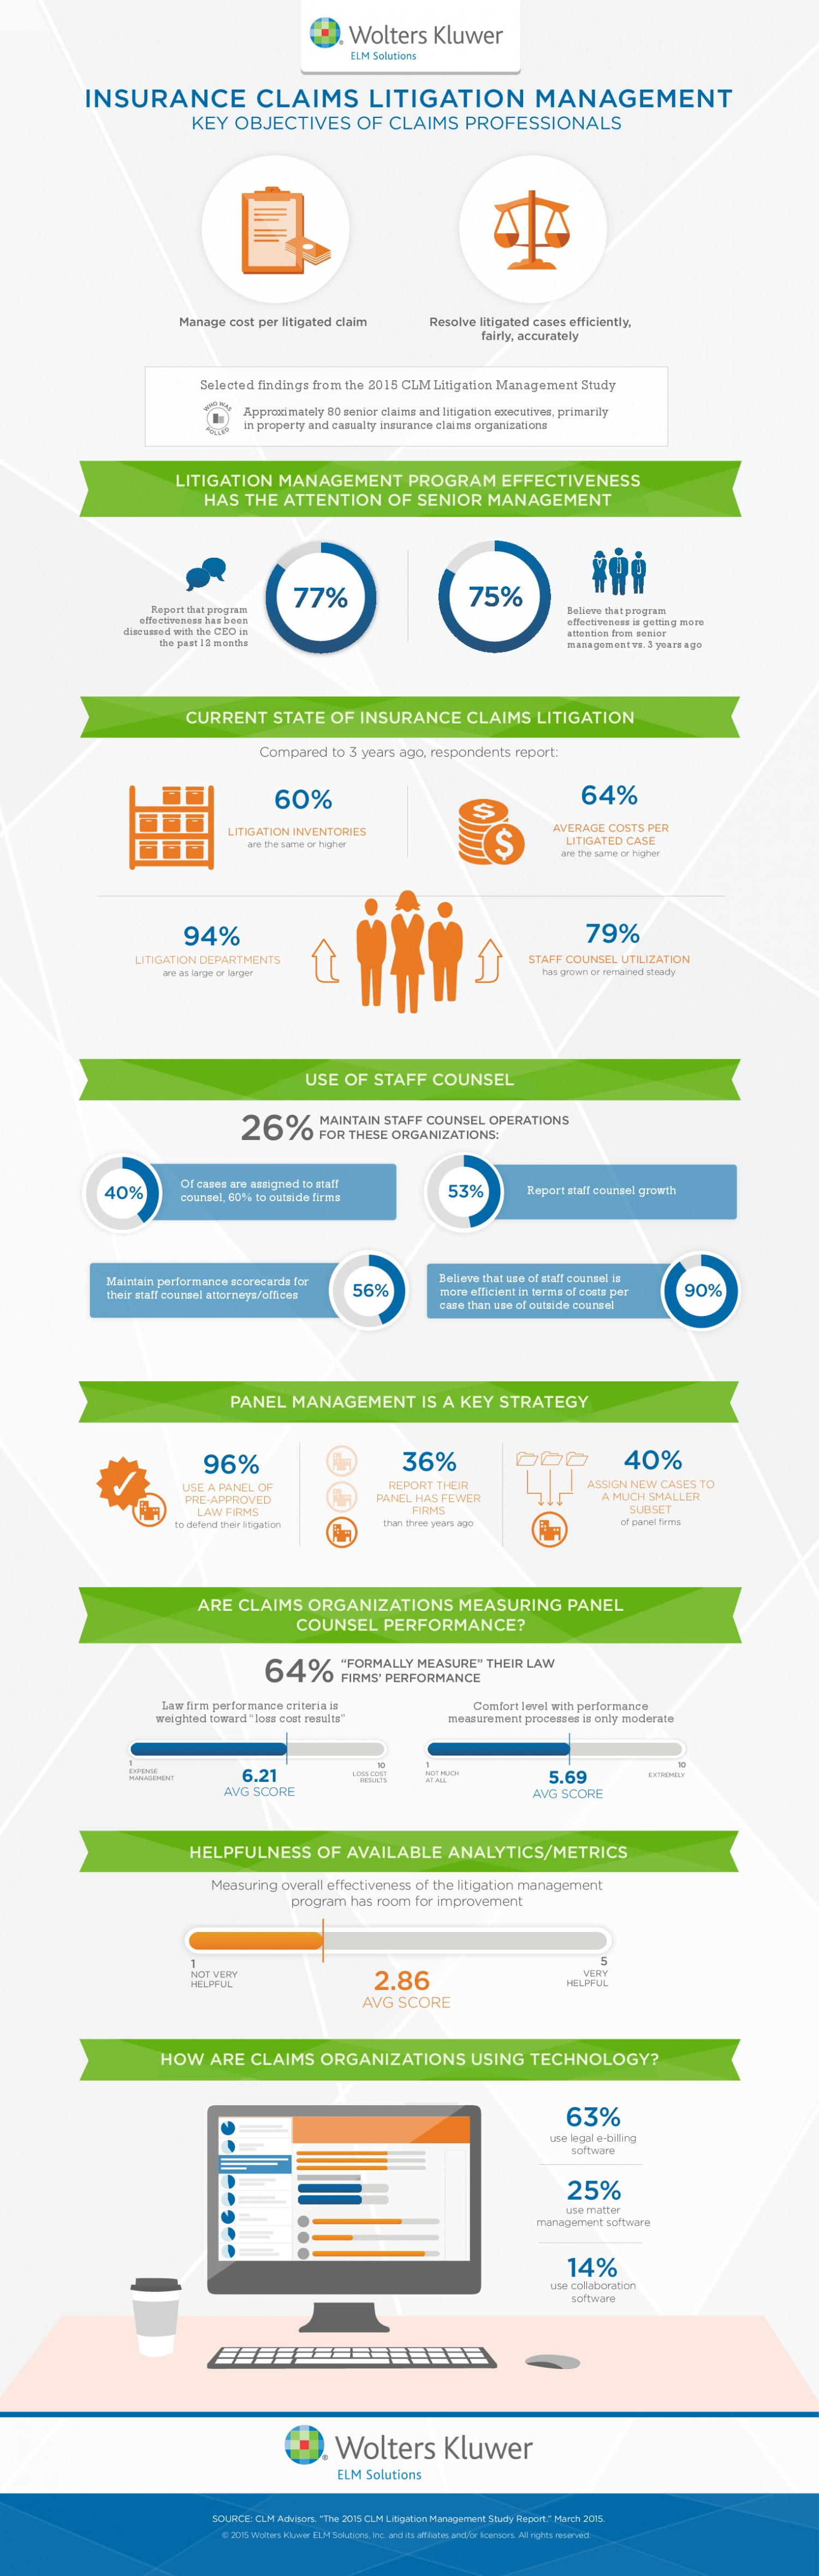 Insurance Claims and Litigation Management Infographic